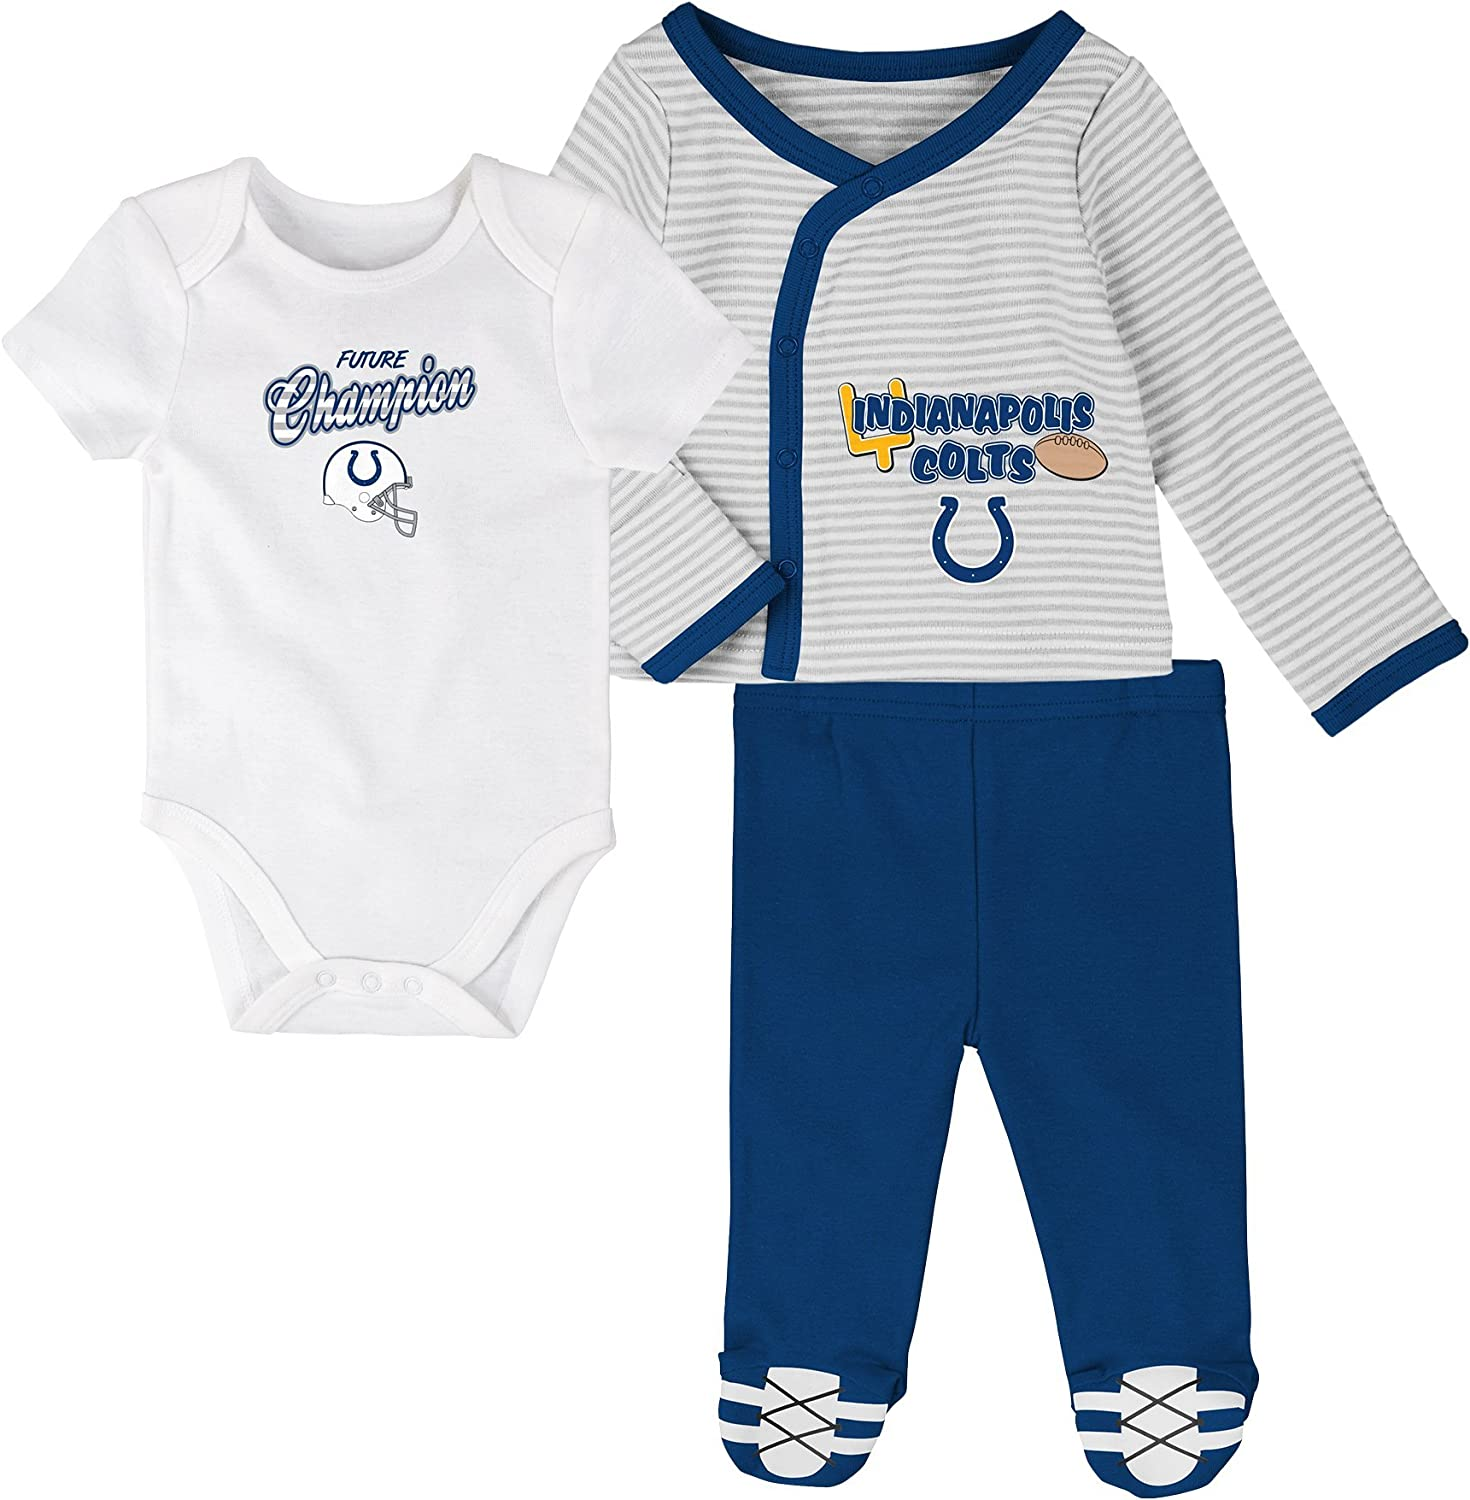 Outerstuff NFL Newborn Future Champ 3 Piece Onesie, Shirt and Pants Set, Indianapolis Colts, Speed Blue, 3 Months: Clothing